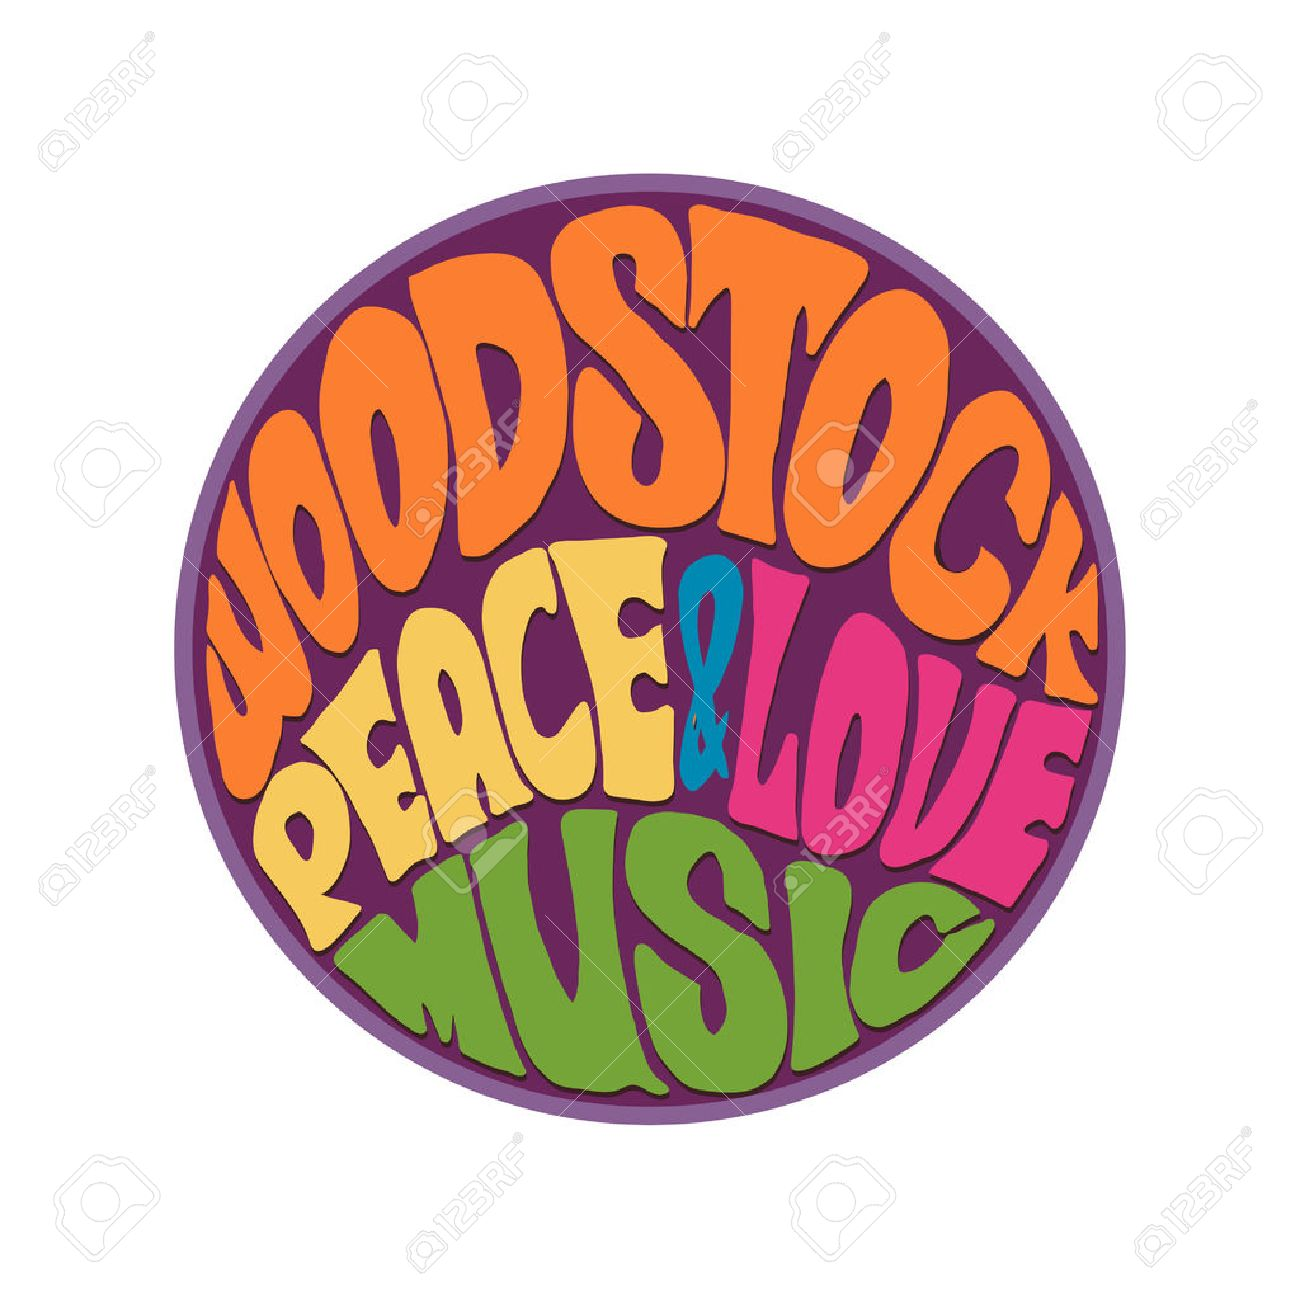 687 Woodstock Stock Vector Illustration And Royalty Free Woodstock.